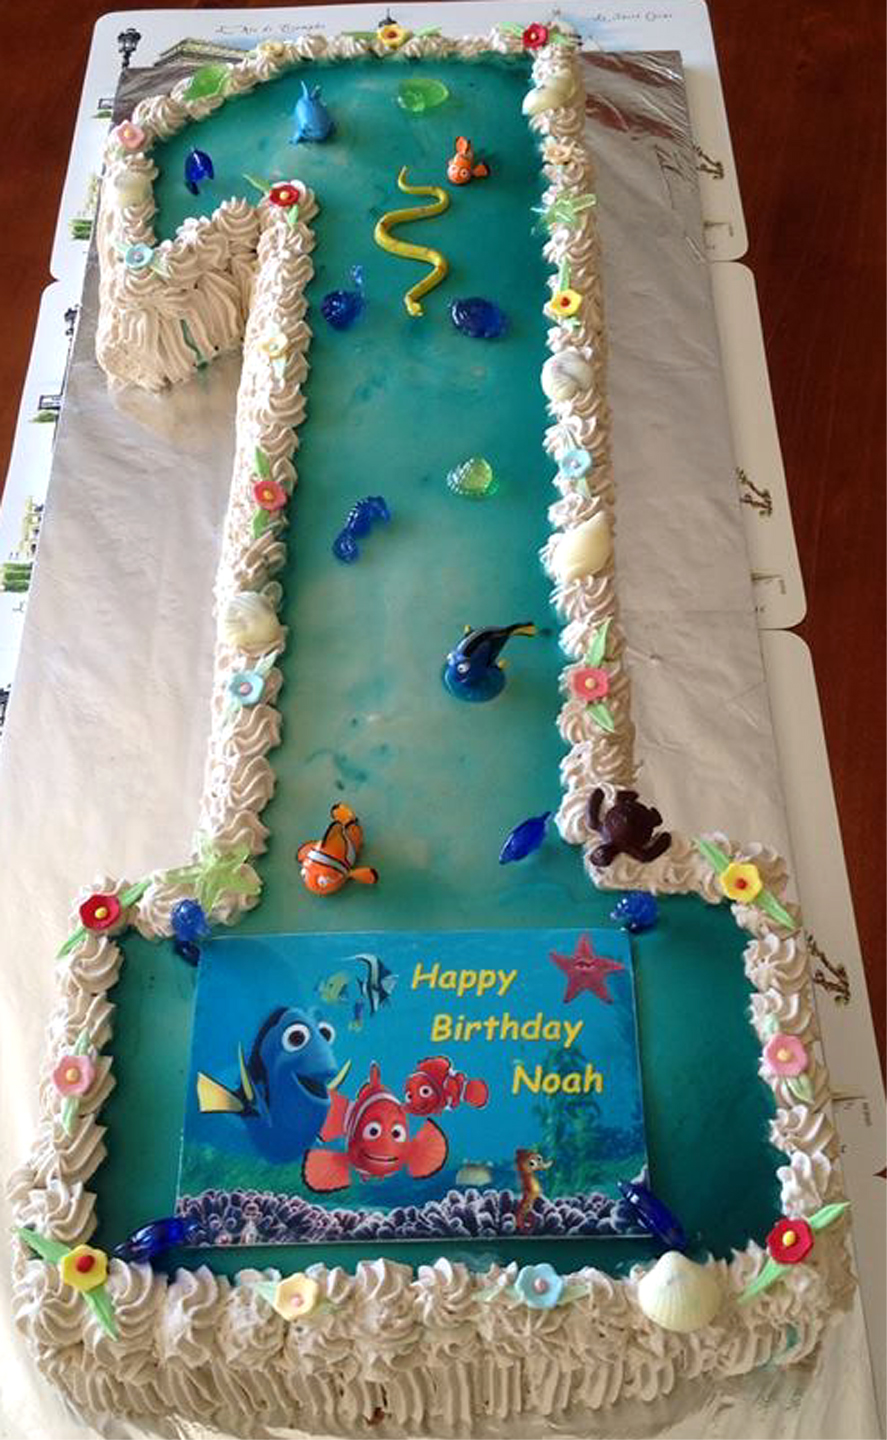 Happy Birthday Noah at French Haven Patisserie - Bakery at Craigieburn Highlands